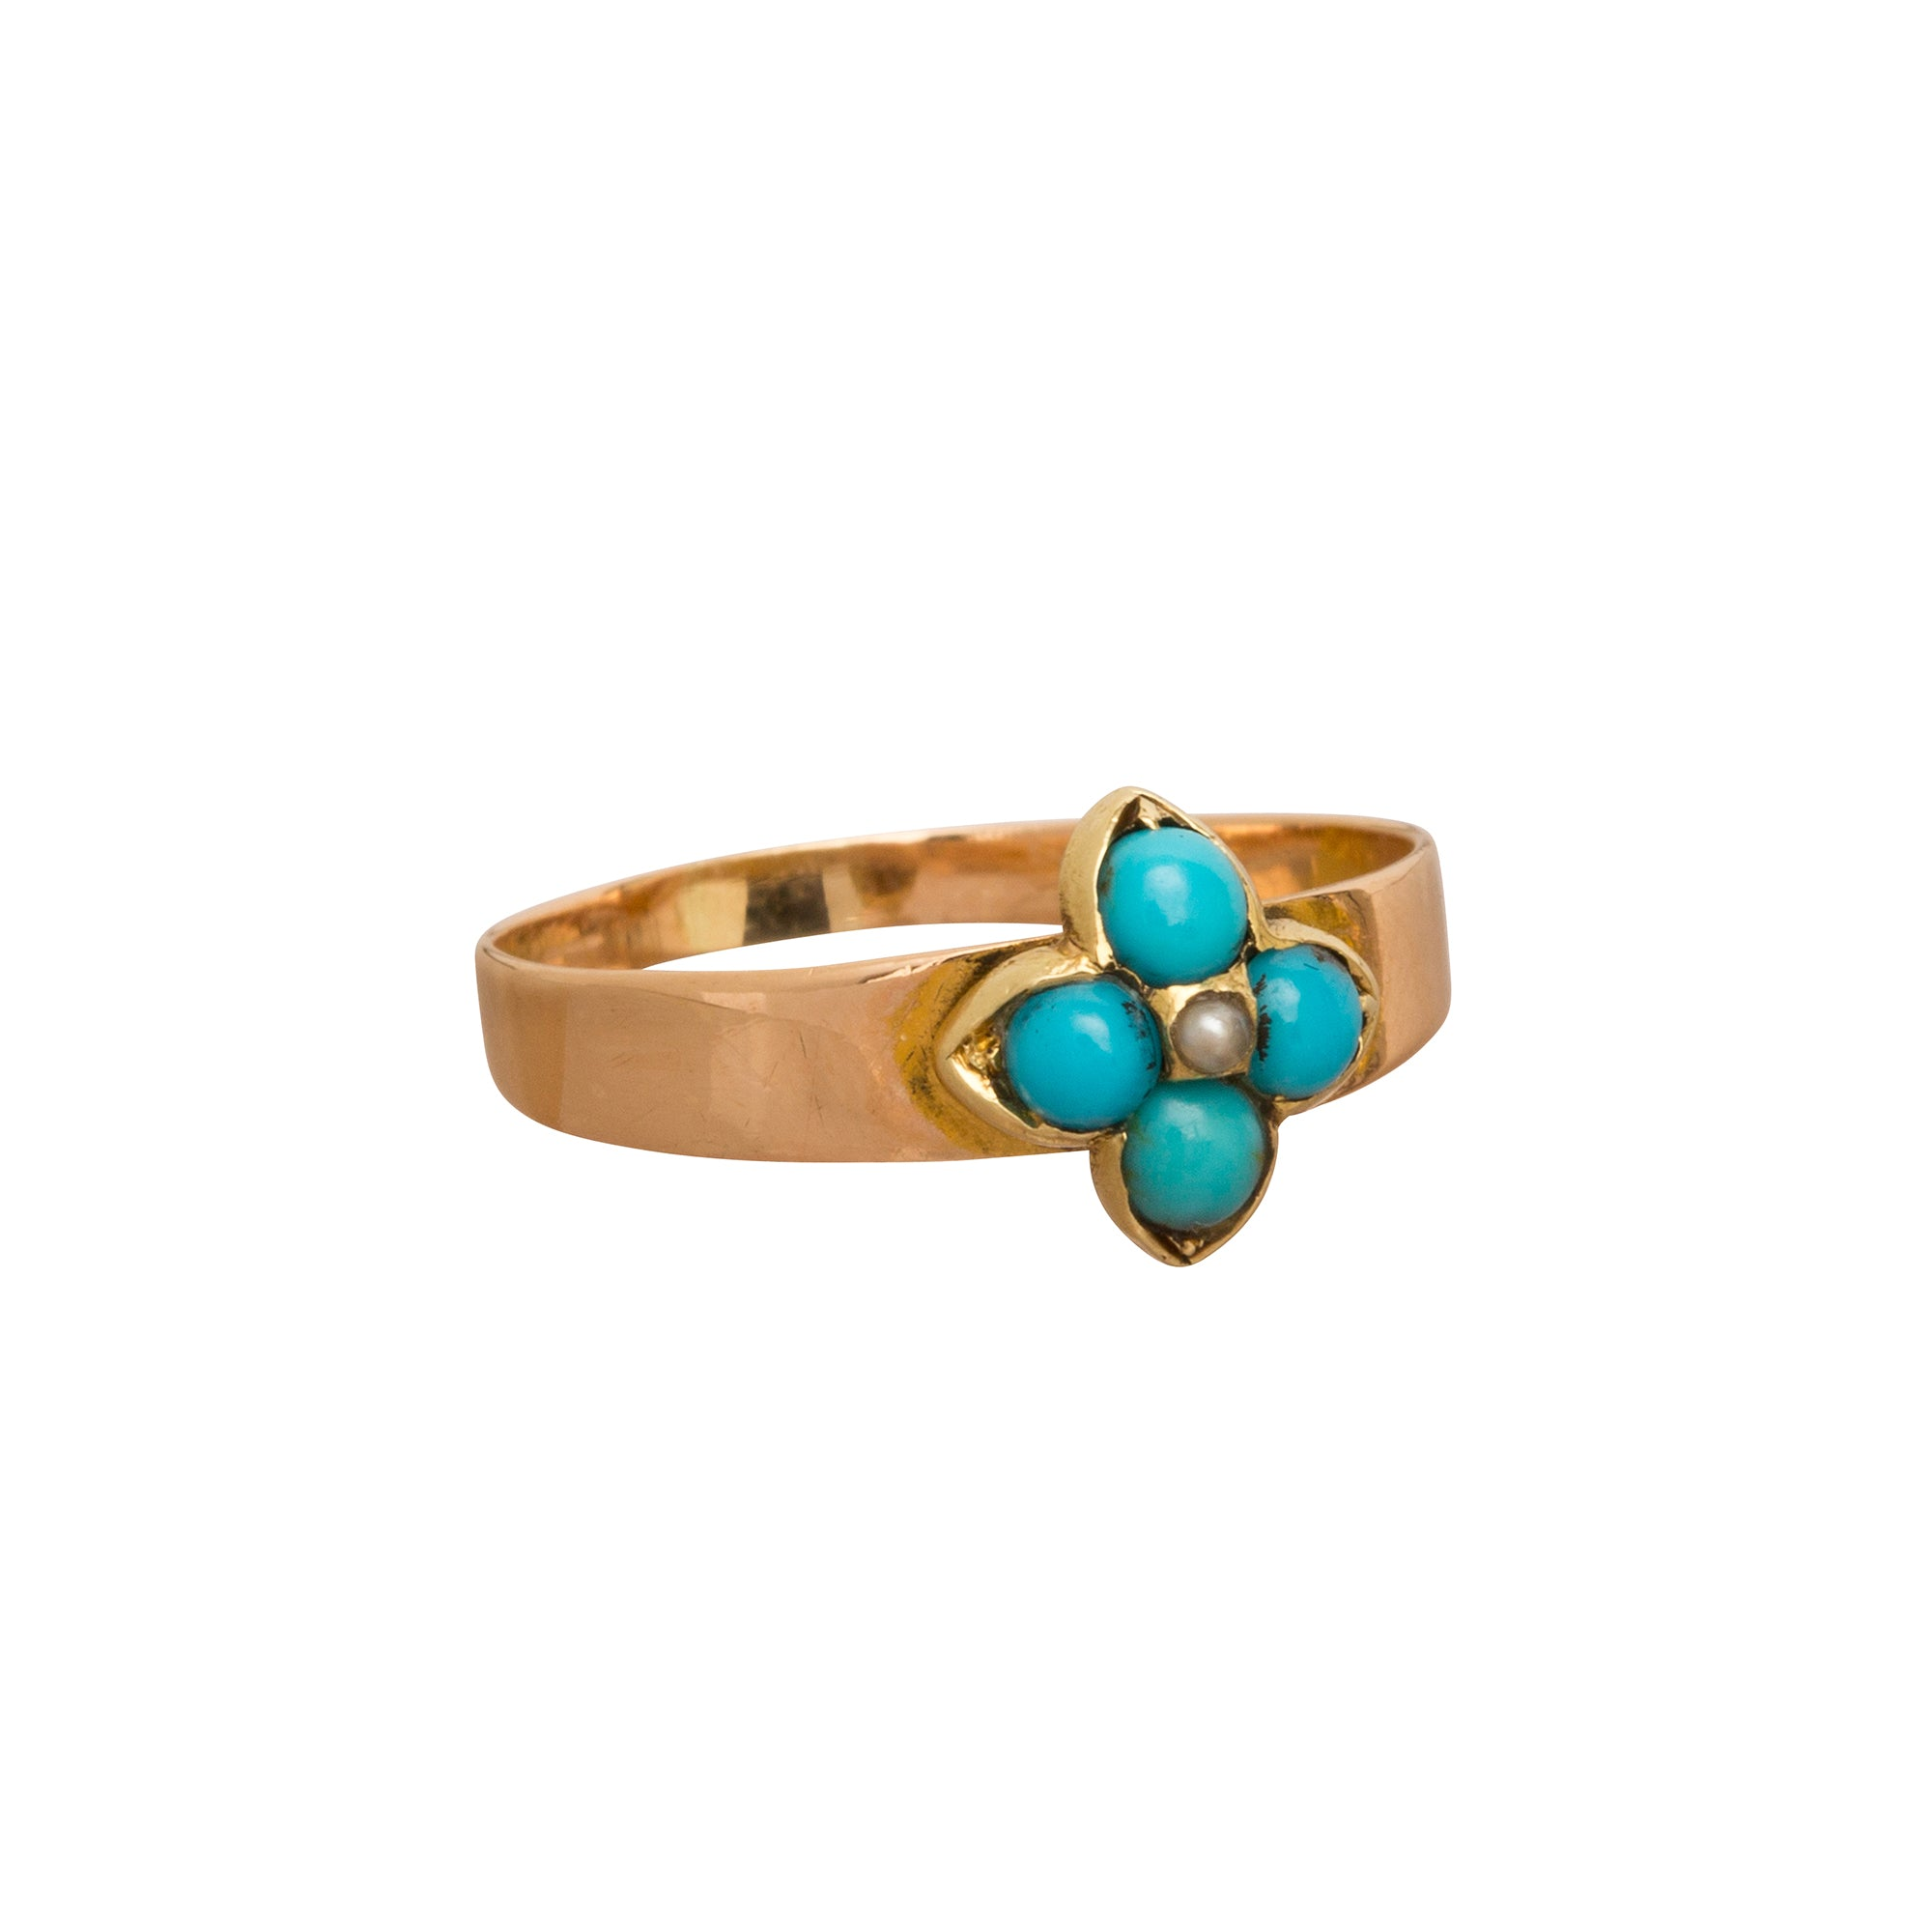 Turquoise & Pearl Ring - Broken English Jewelry